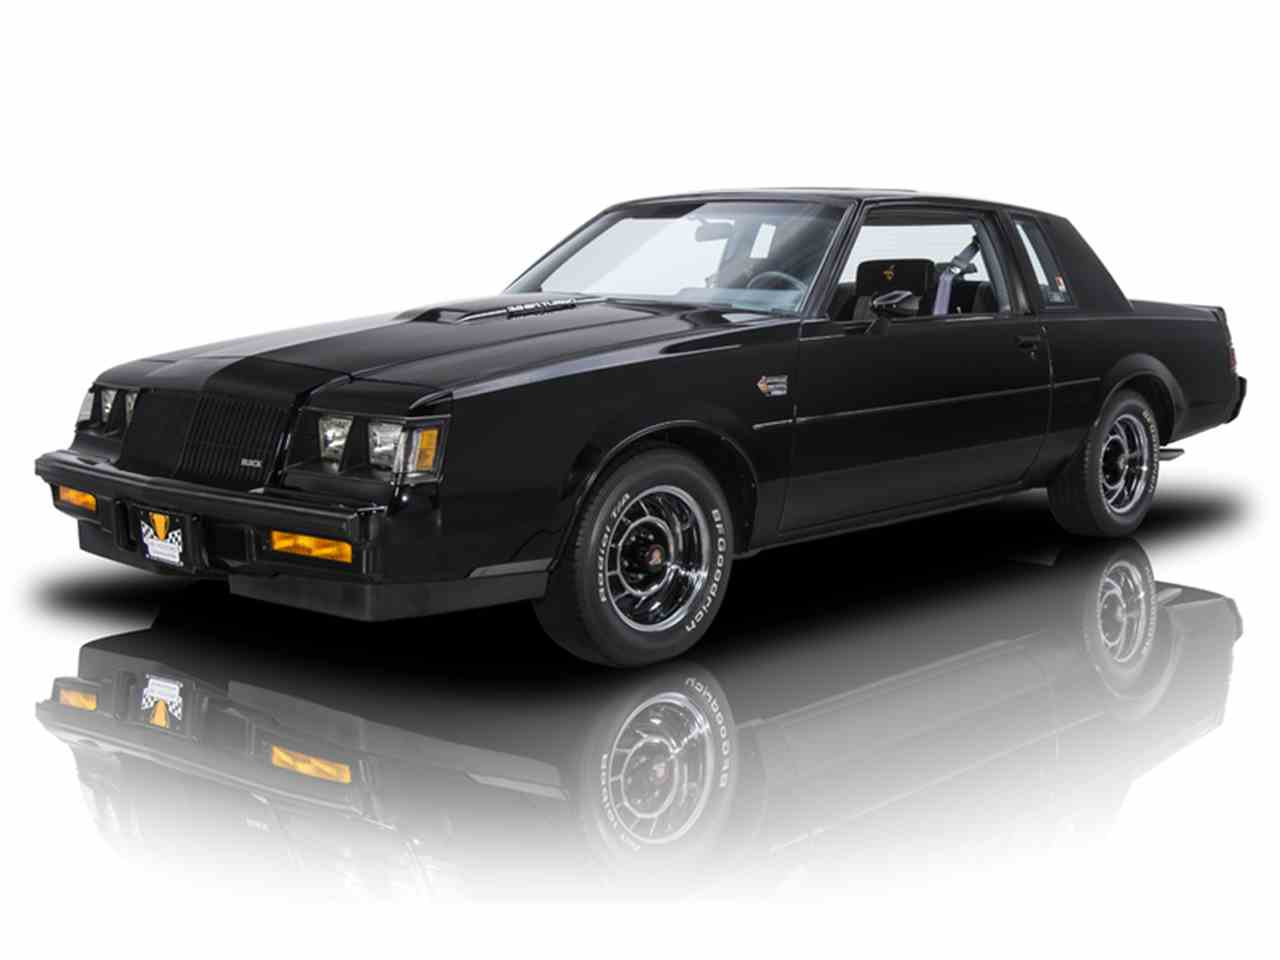 1987 Buick Grand National For Sale Classiccars Com Cc 1005161